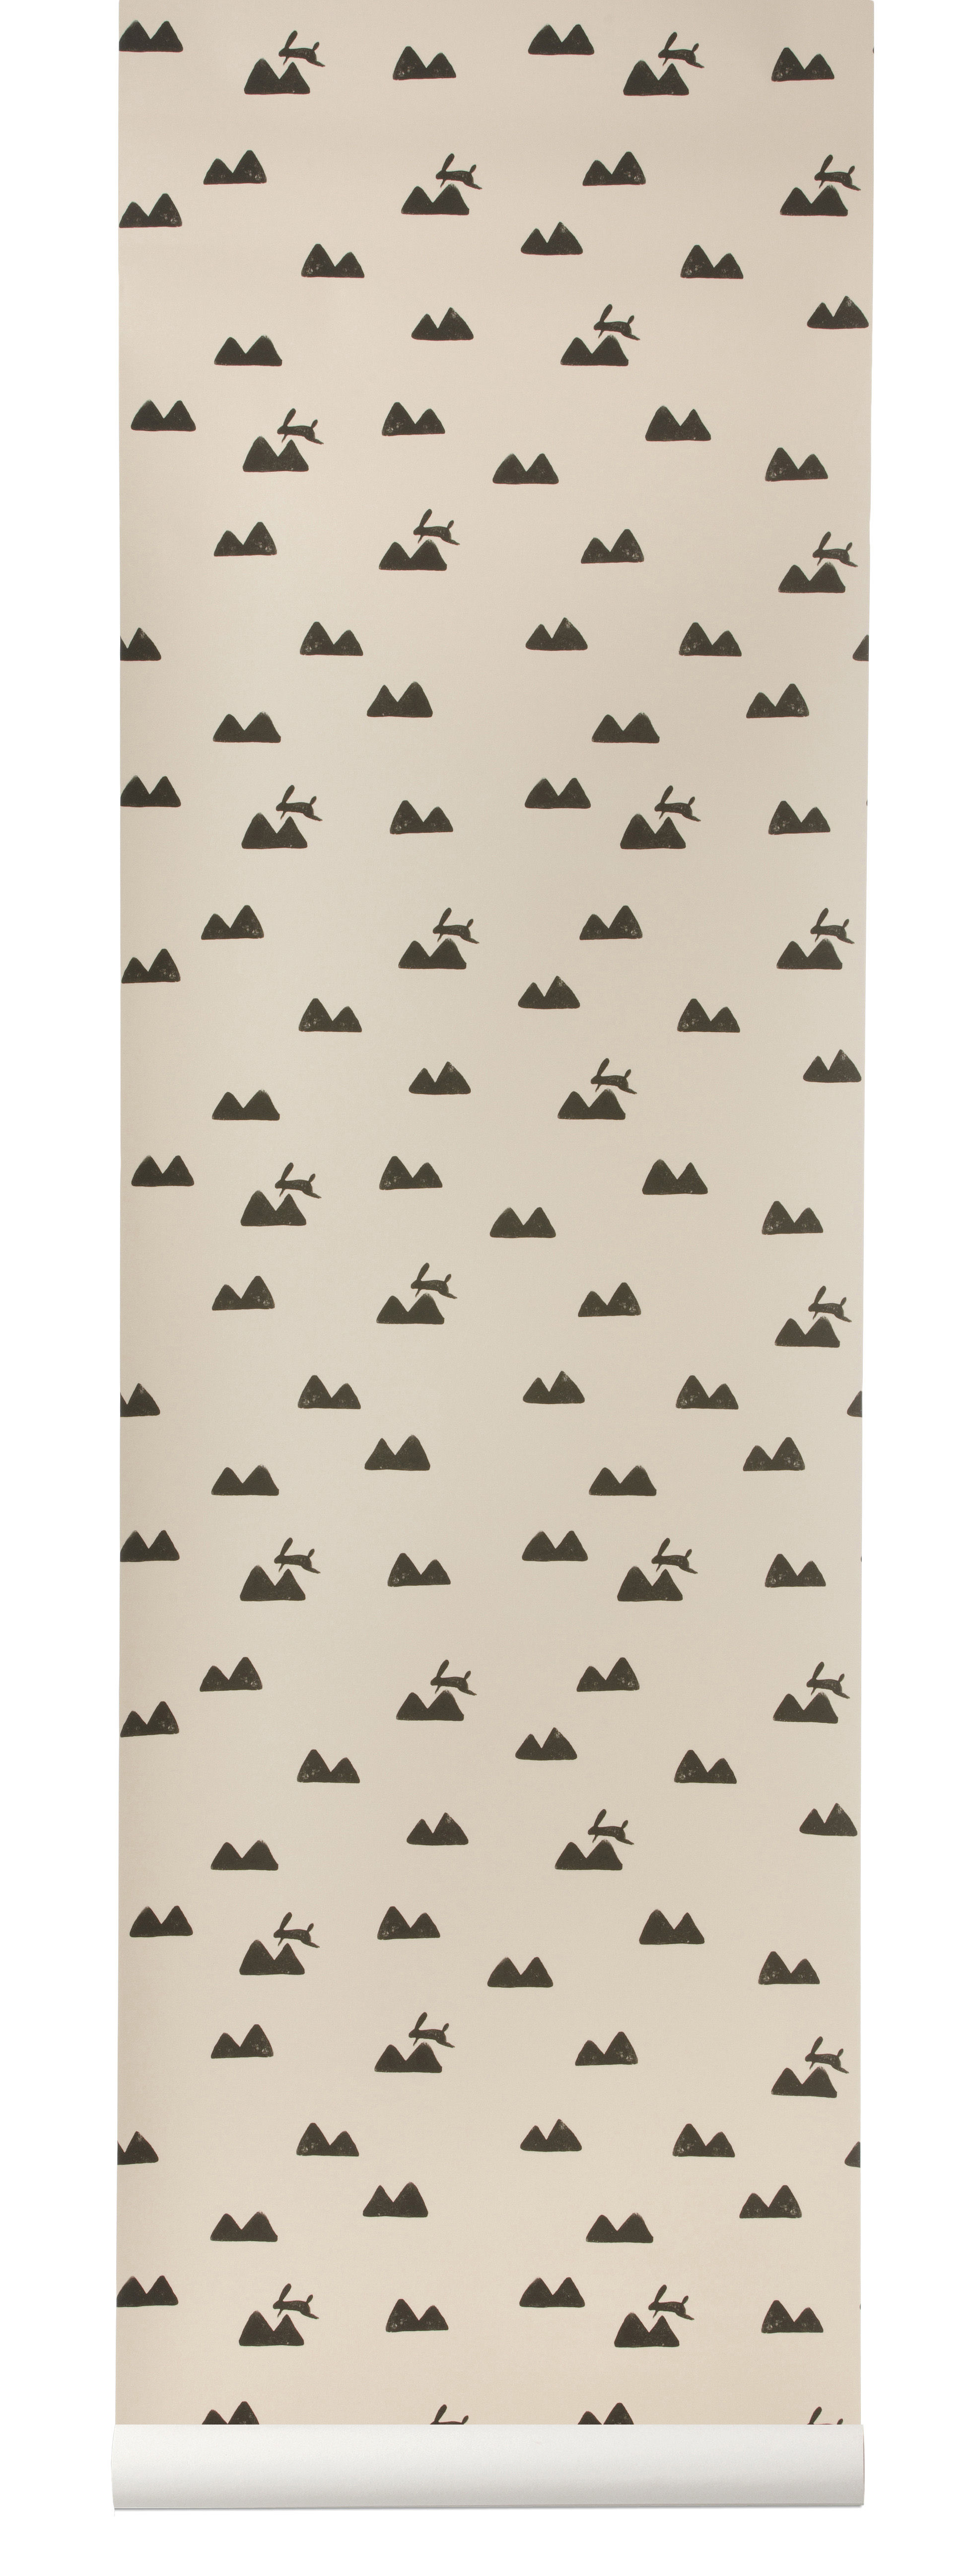 Decoration - Children's Home Accessories - Rabbit Wallpaper - 1 panel - W 53 cm by Ferm Living - Pink / Black - Non-woven fabric